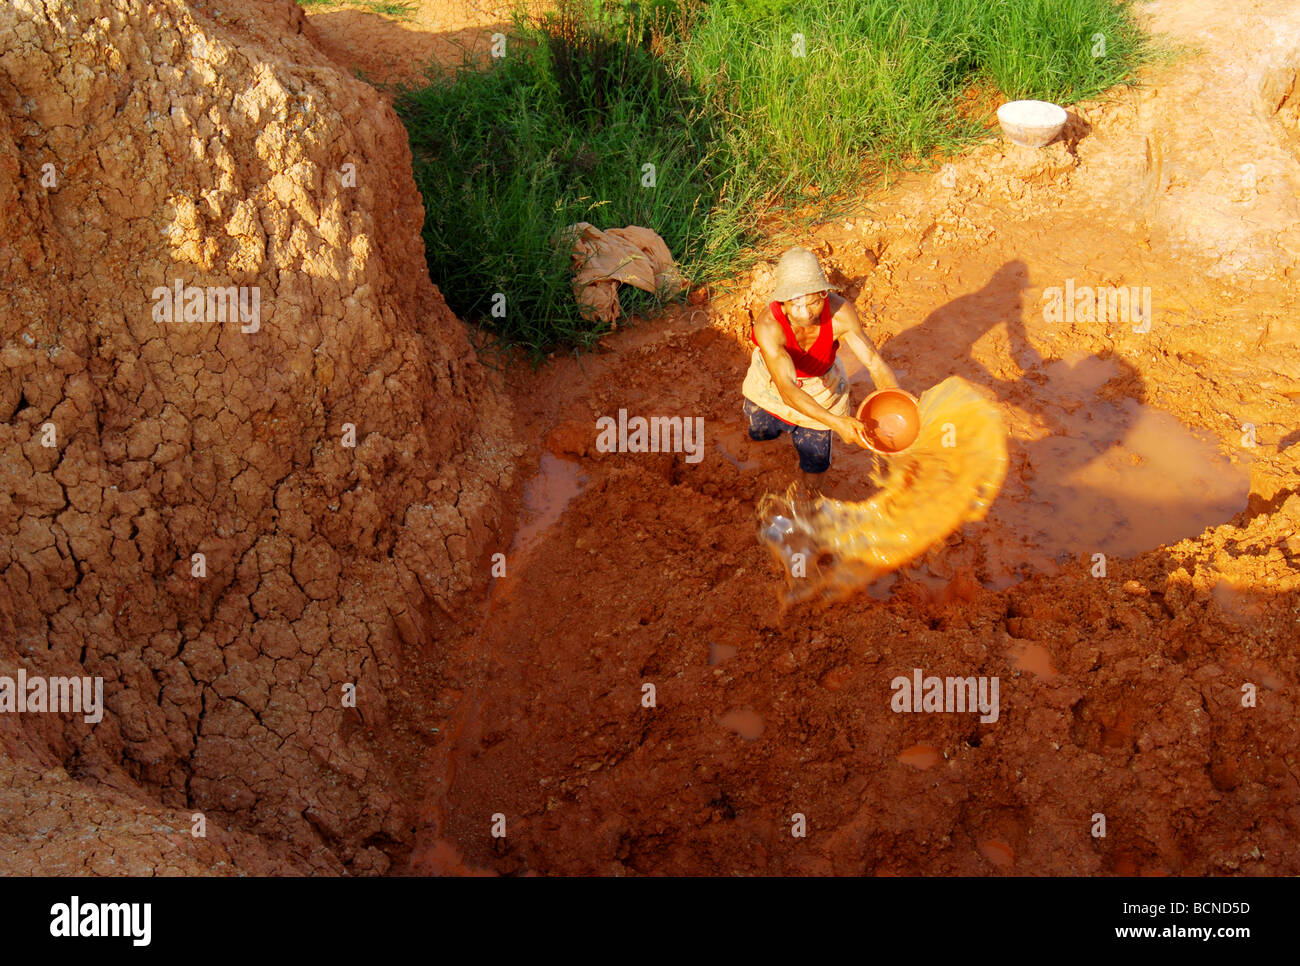 Chinese man preparing clay to make pot using century old technique, Shuangliu, Szechwan Province, China - Stock Image